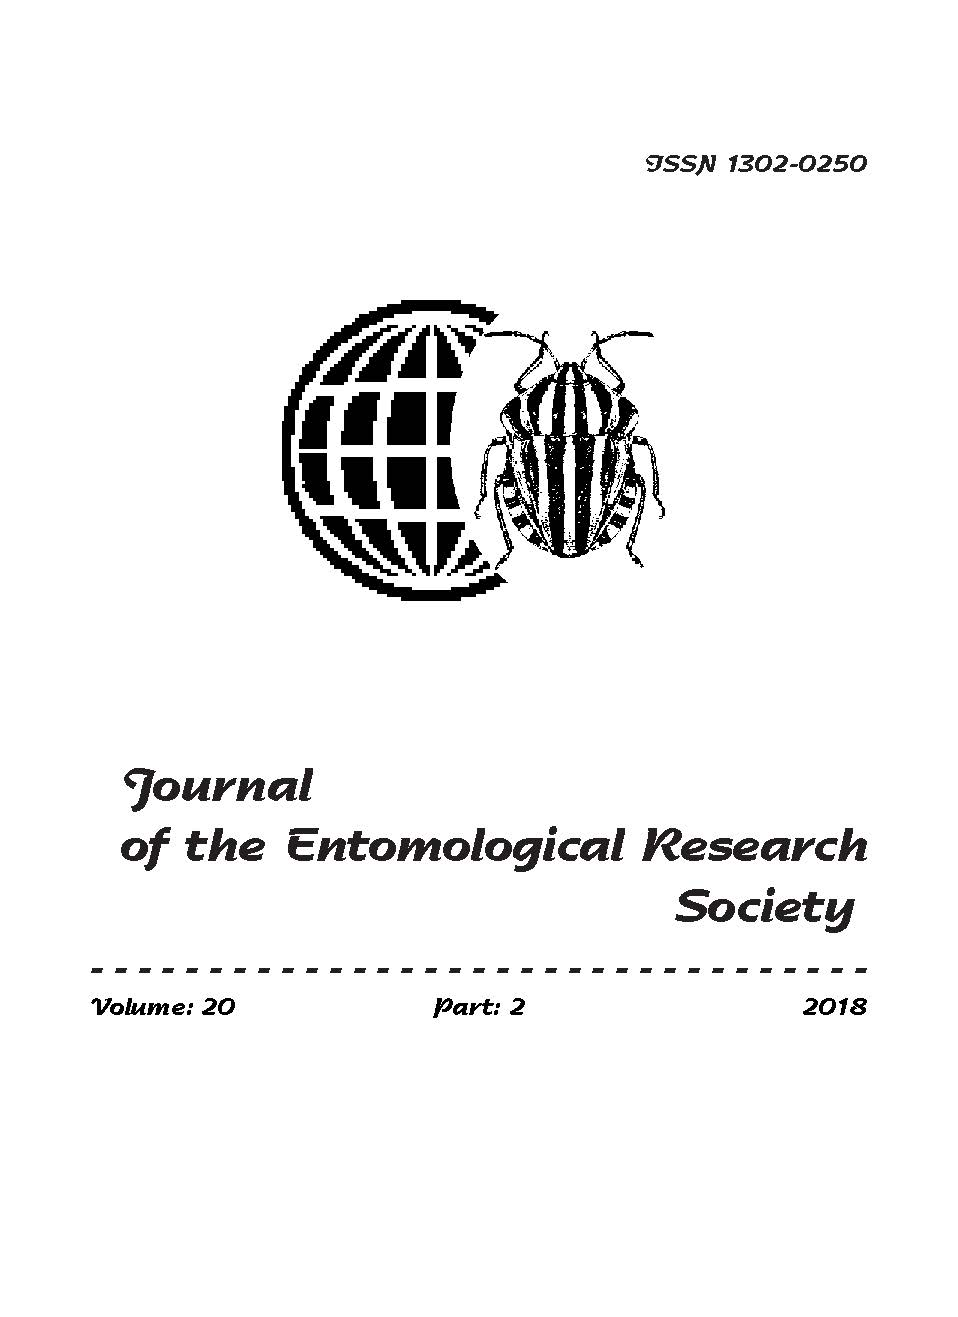 View Vol. 20 No. 2 (2018): Journal of the Entomological Research Society